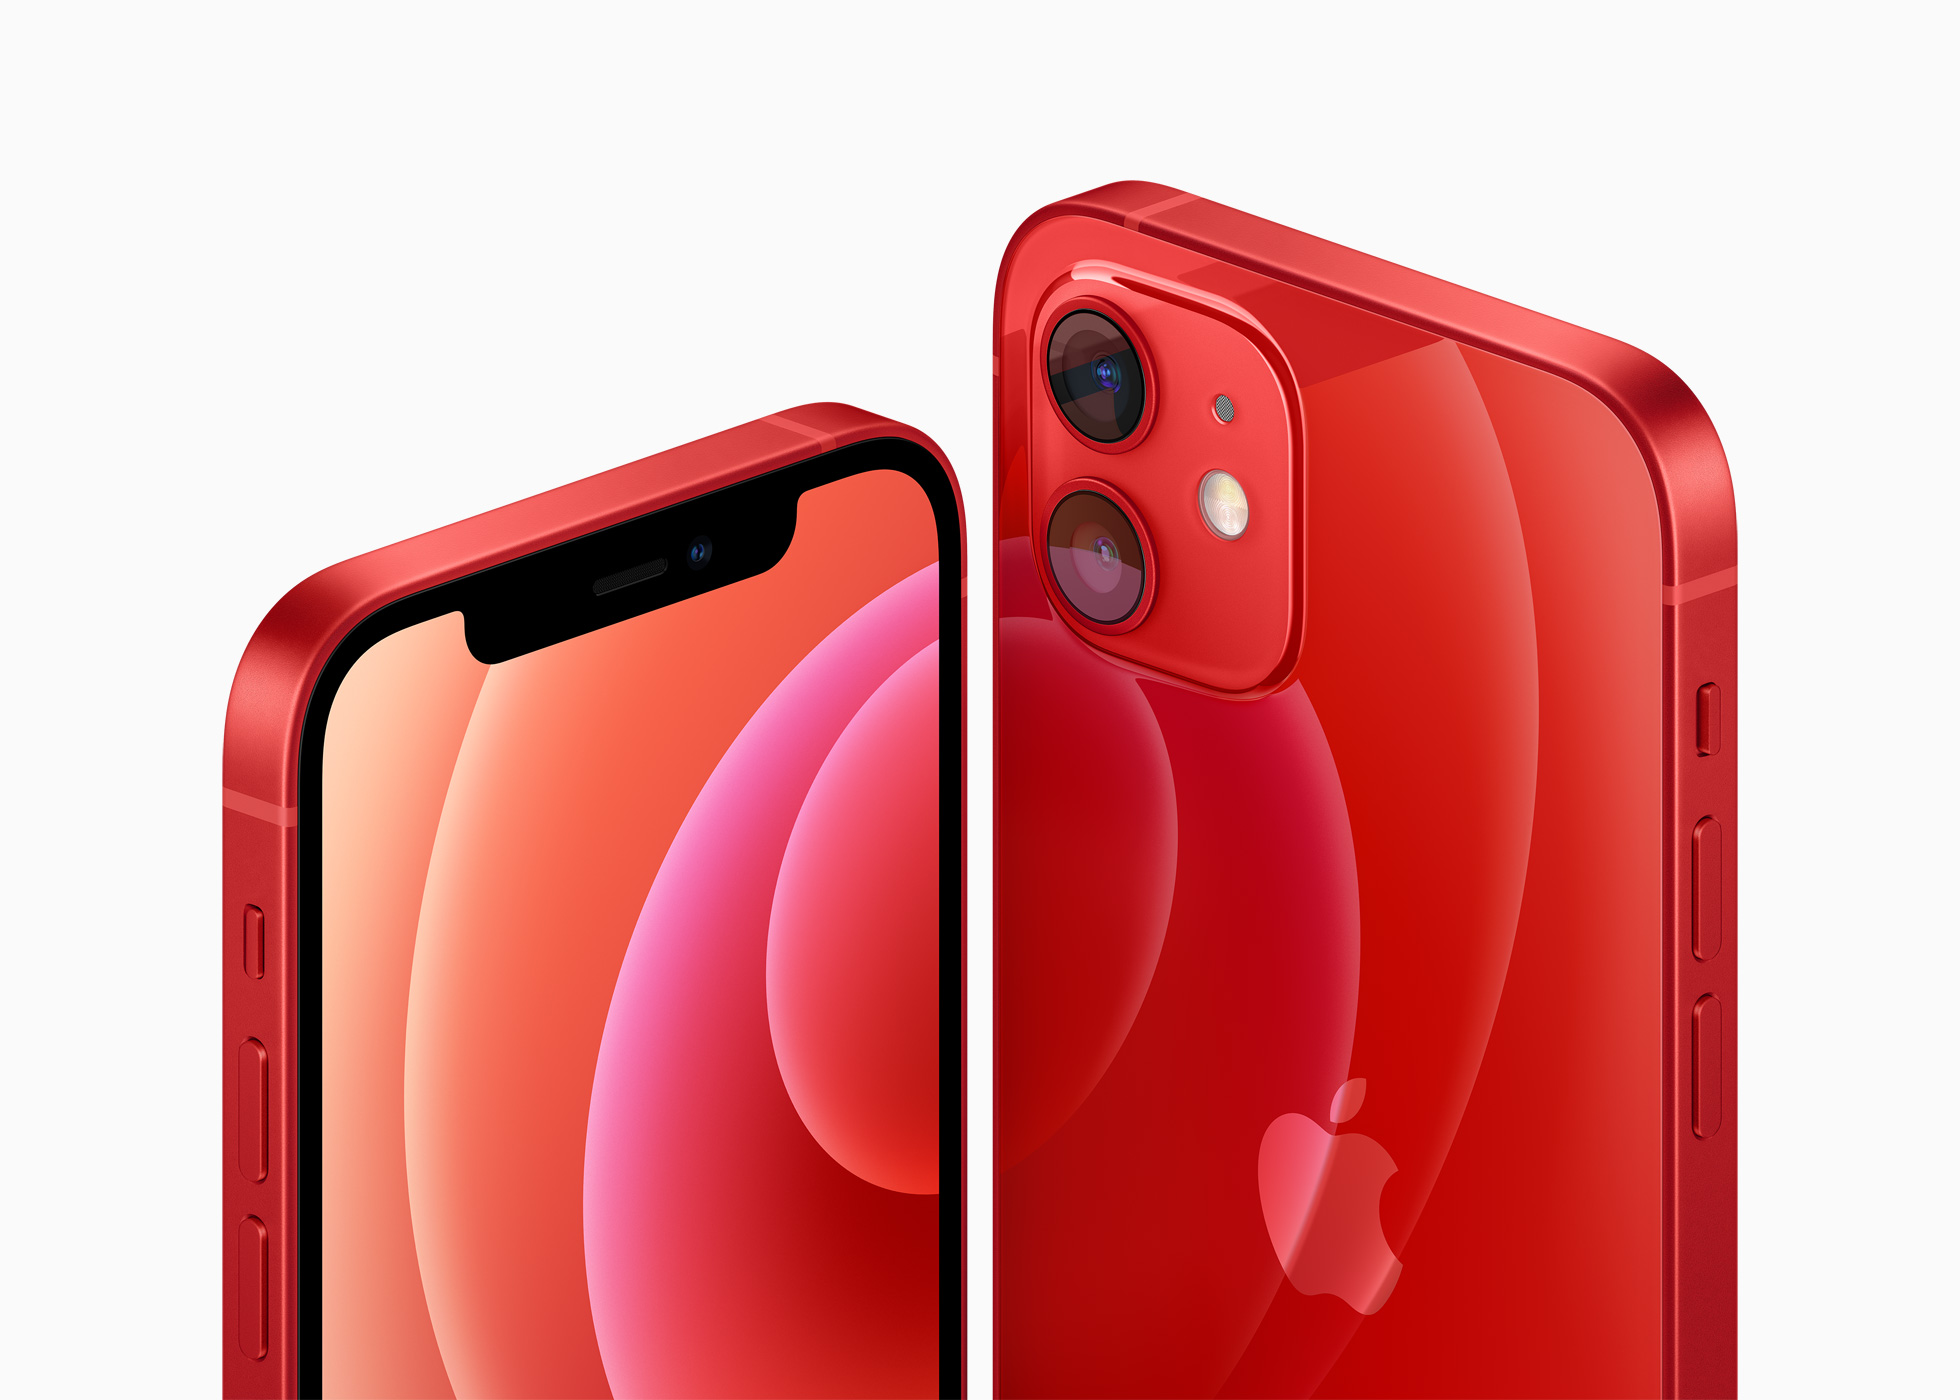 apple_iphone-12_mini_color-red_